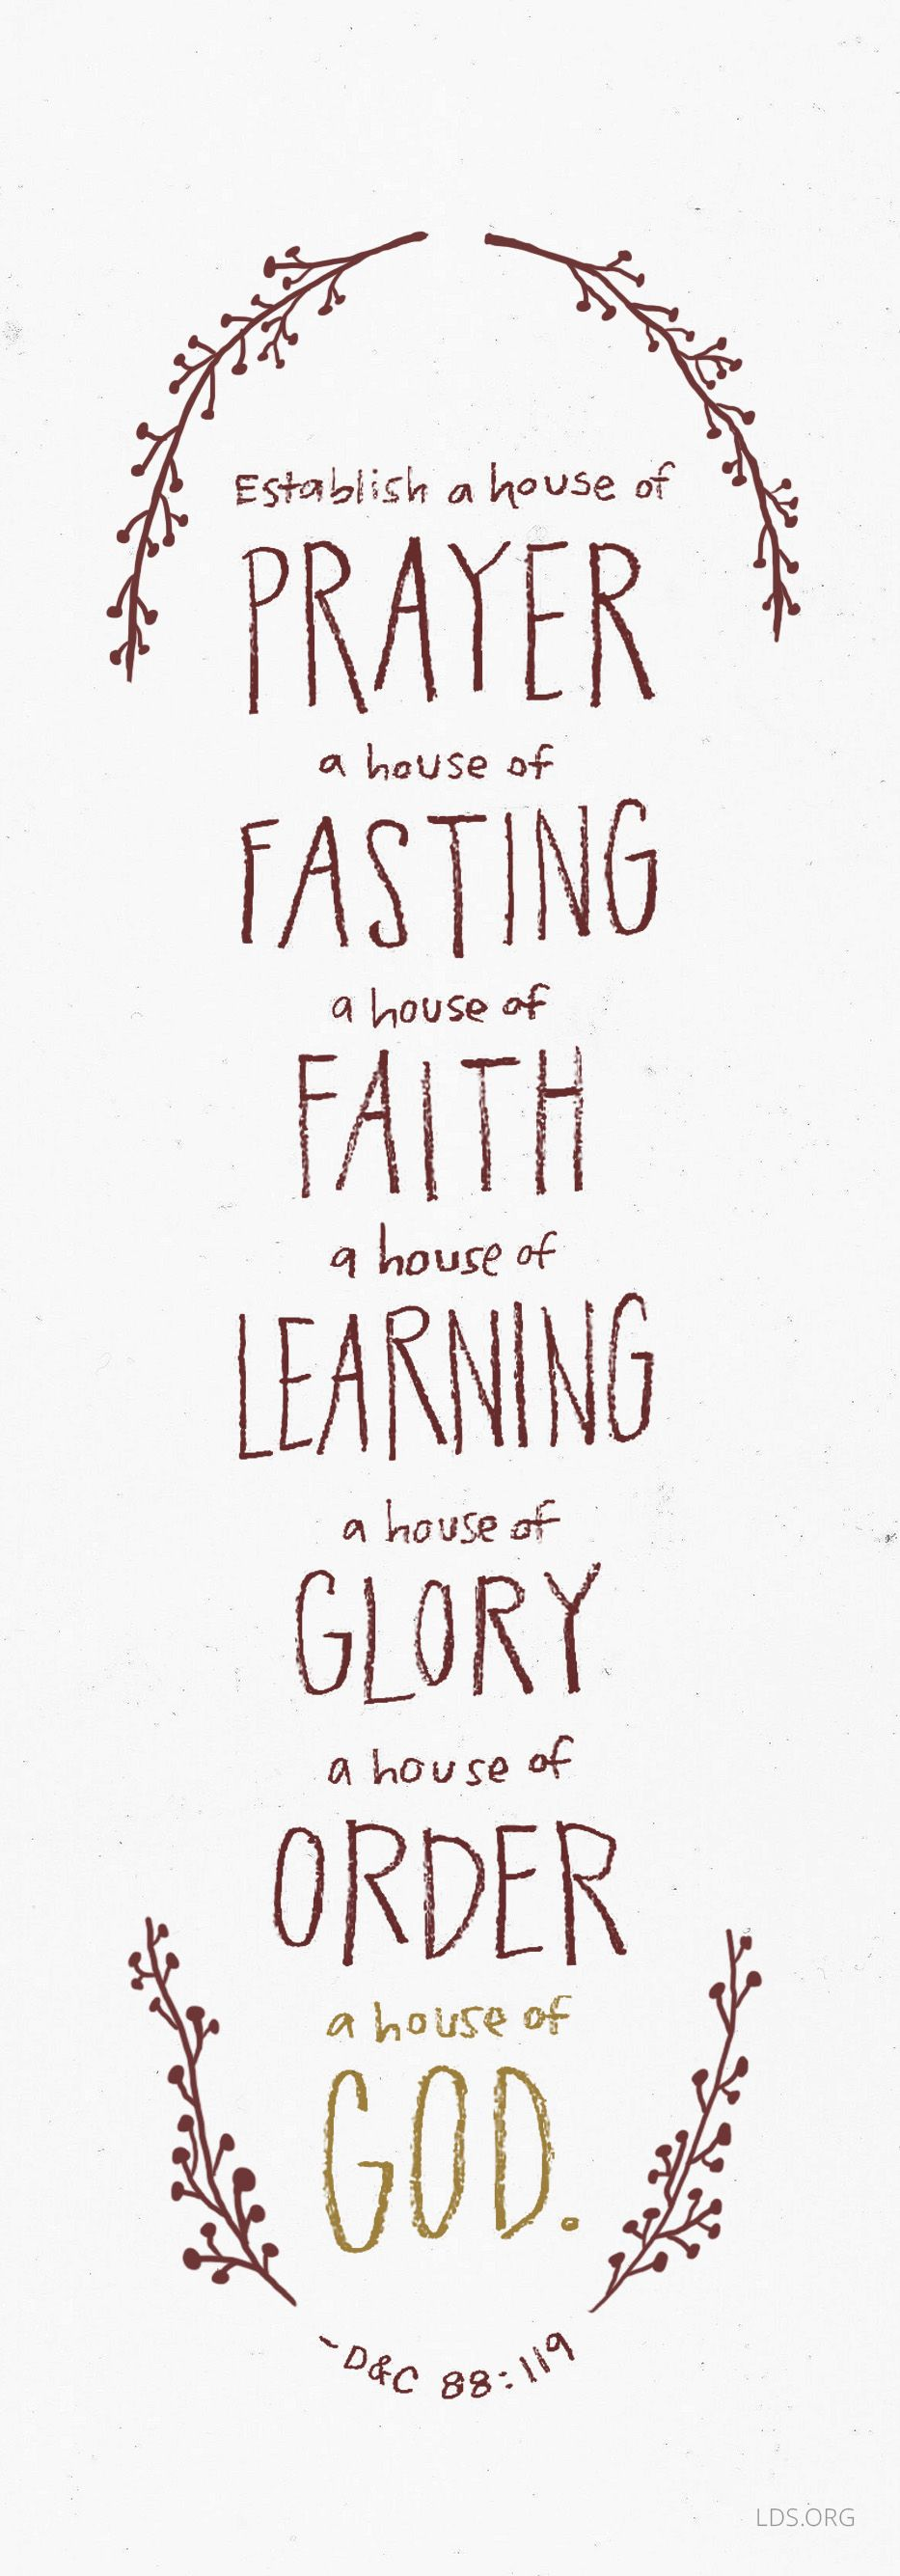 Establish A House Of Prayer A House Of Fasting A House Of Faith A